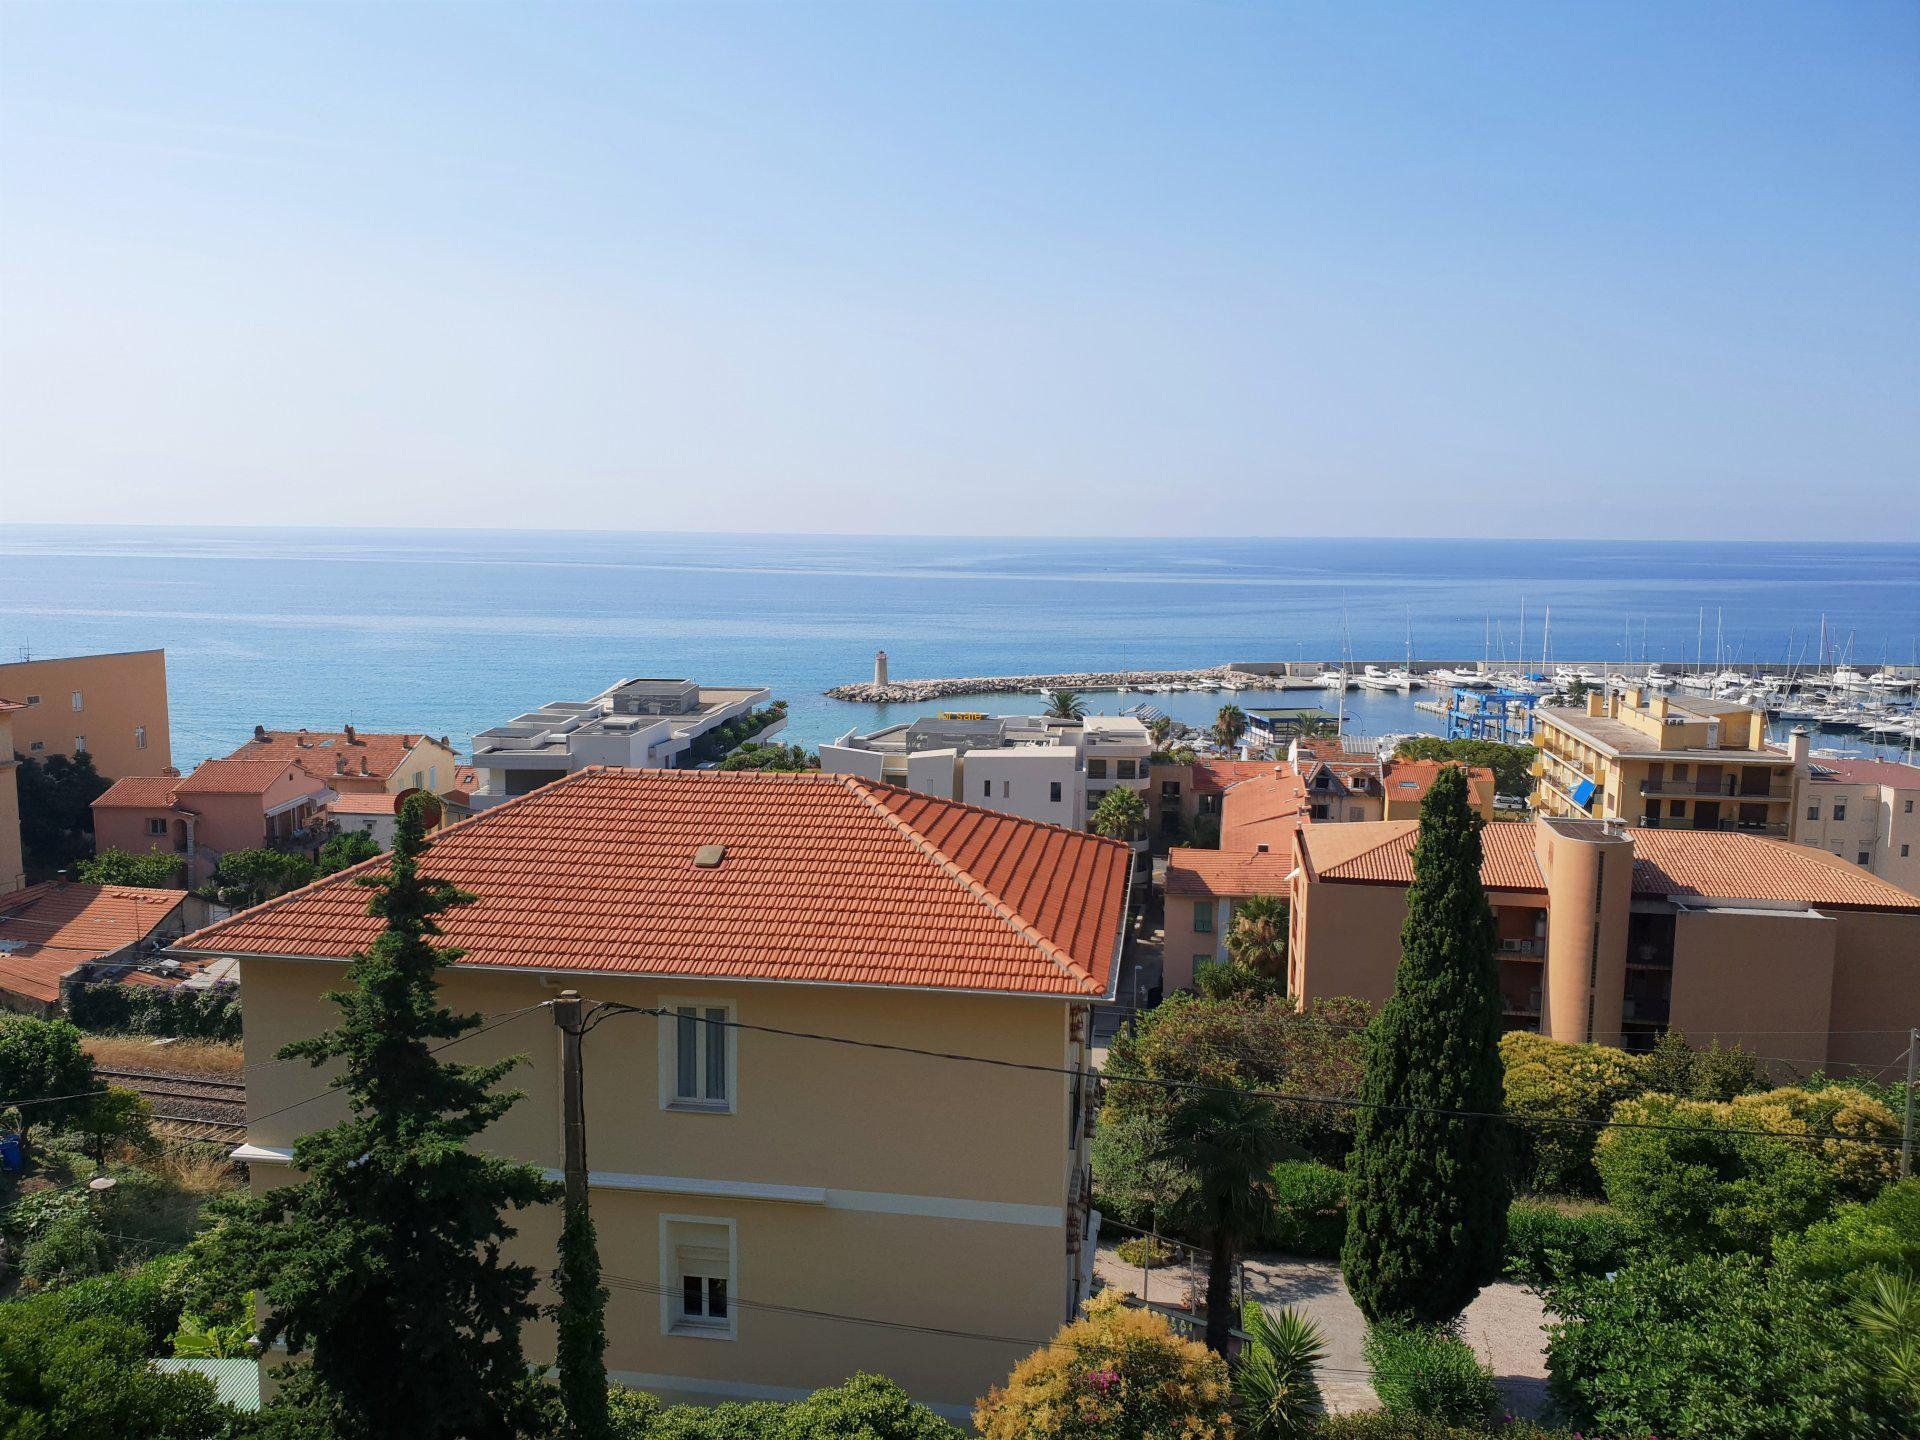 WMN2861908, Superb 2 bedroom apartment with terrace and magnificent sea view - Menton Garavan